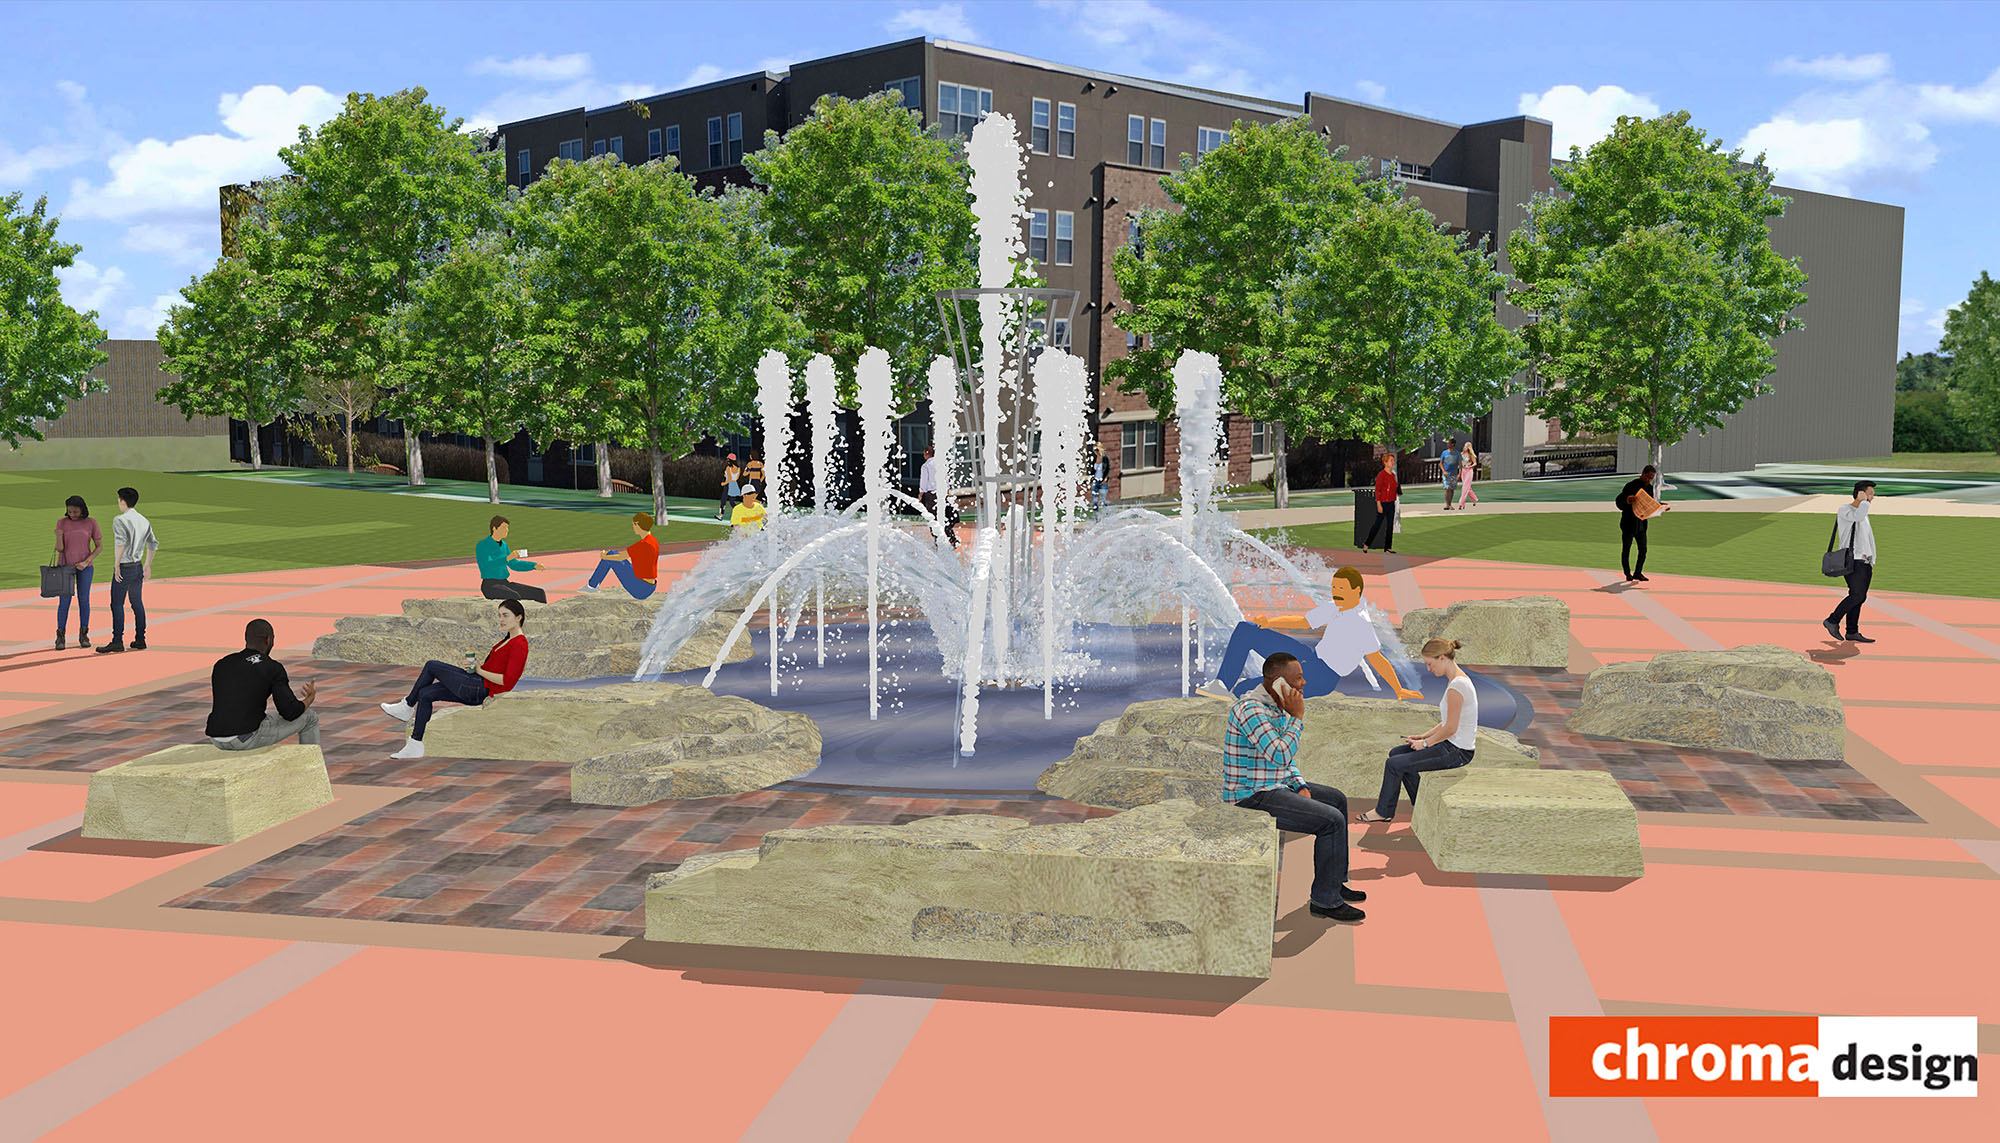 UNK's new Cope Fountain will feature a central water column within an armature feature, surrounded by several smaller jets. A separate project will add sitting stones along the fountain's perimeter. (Chroma Design)